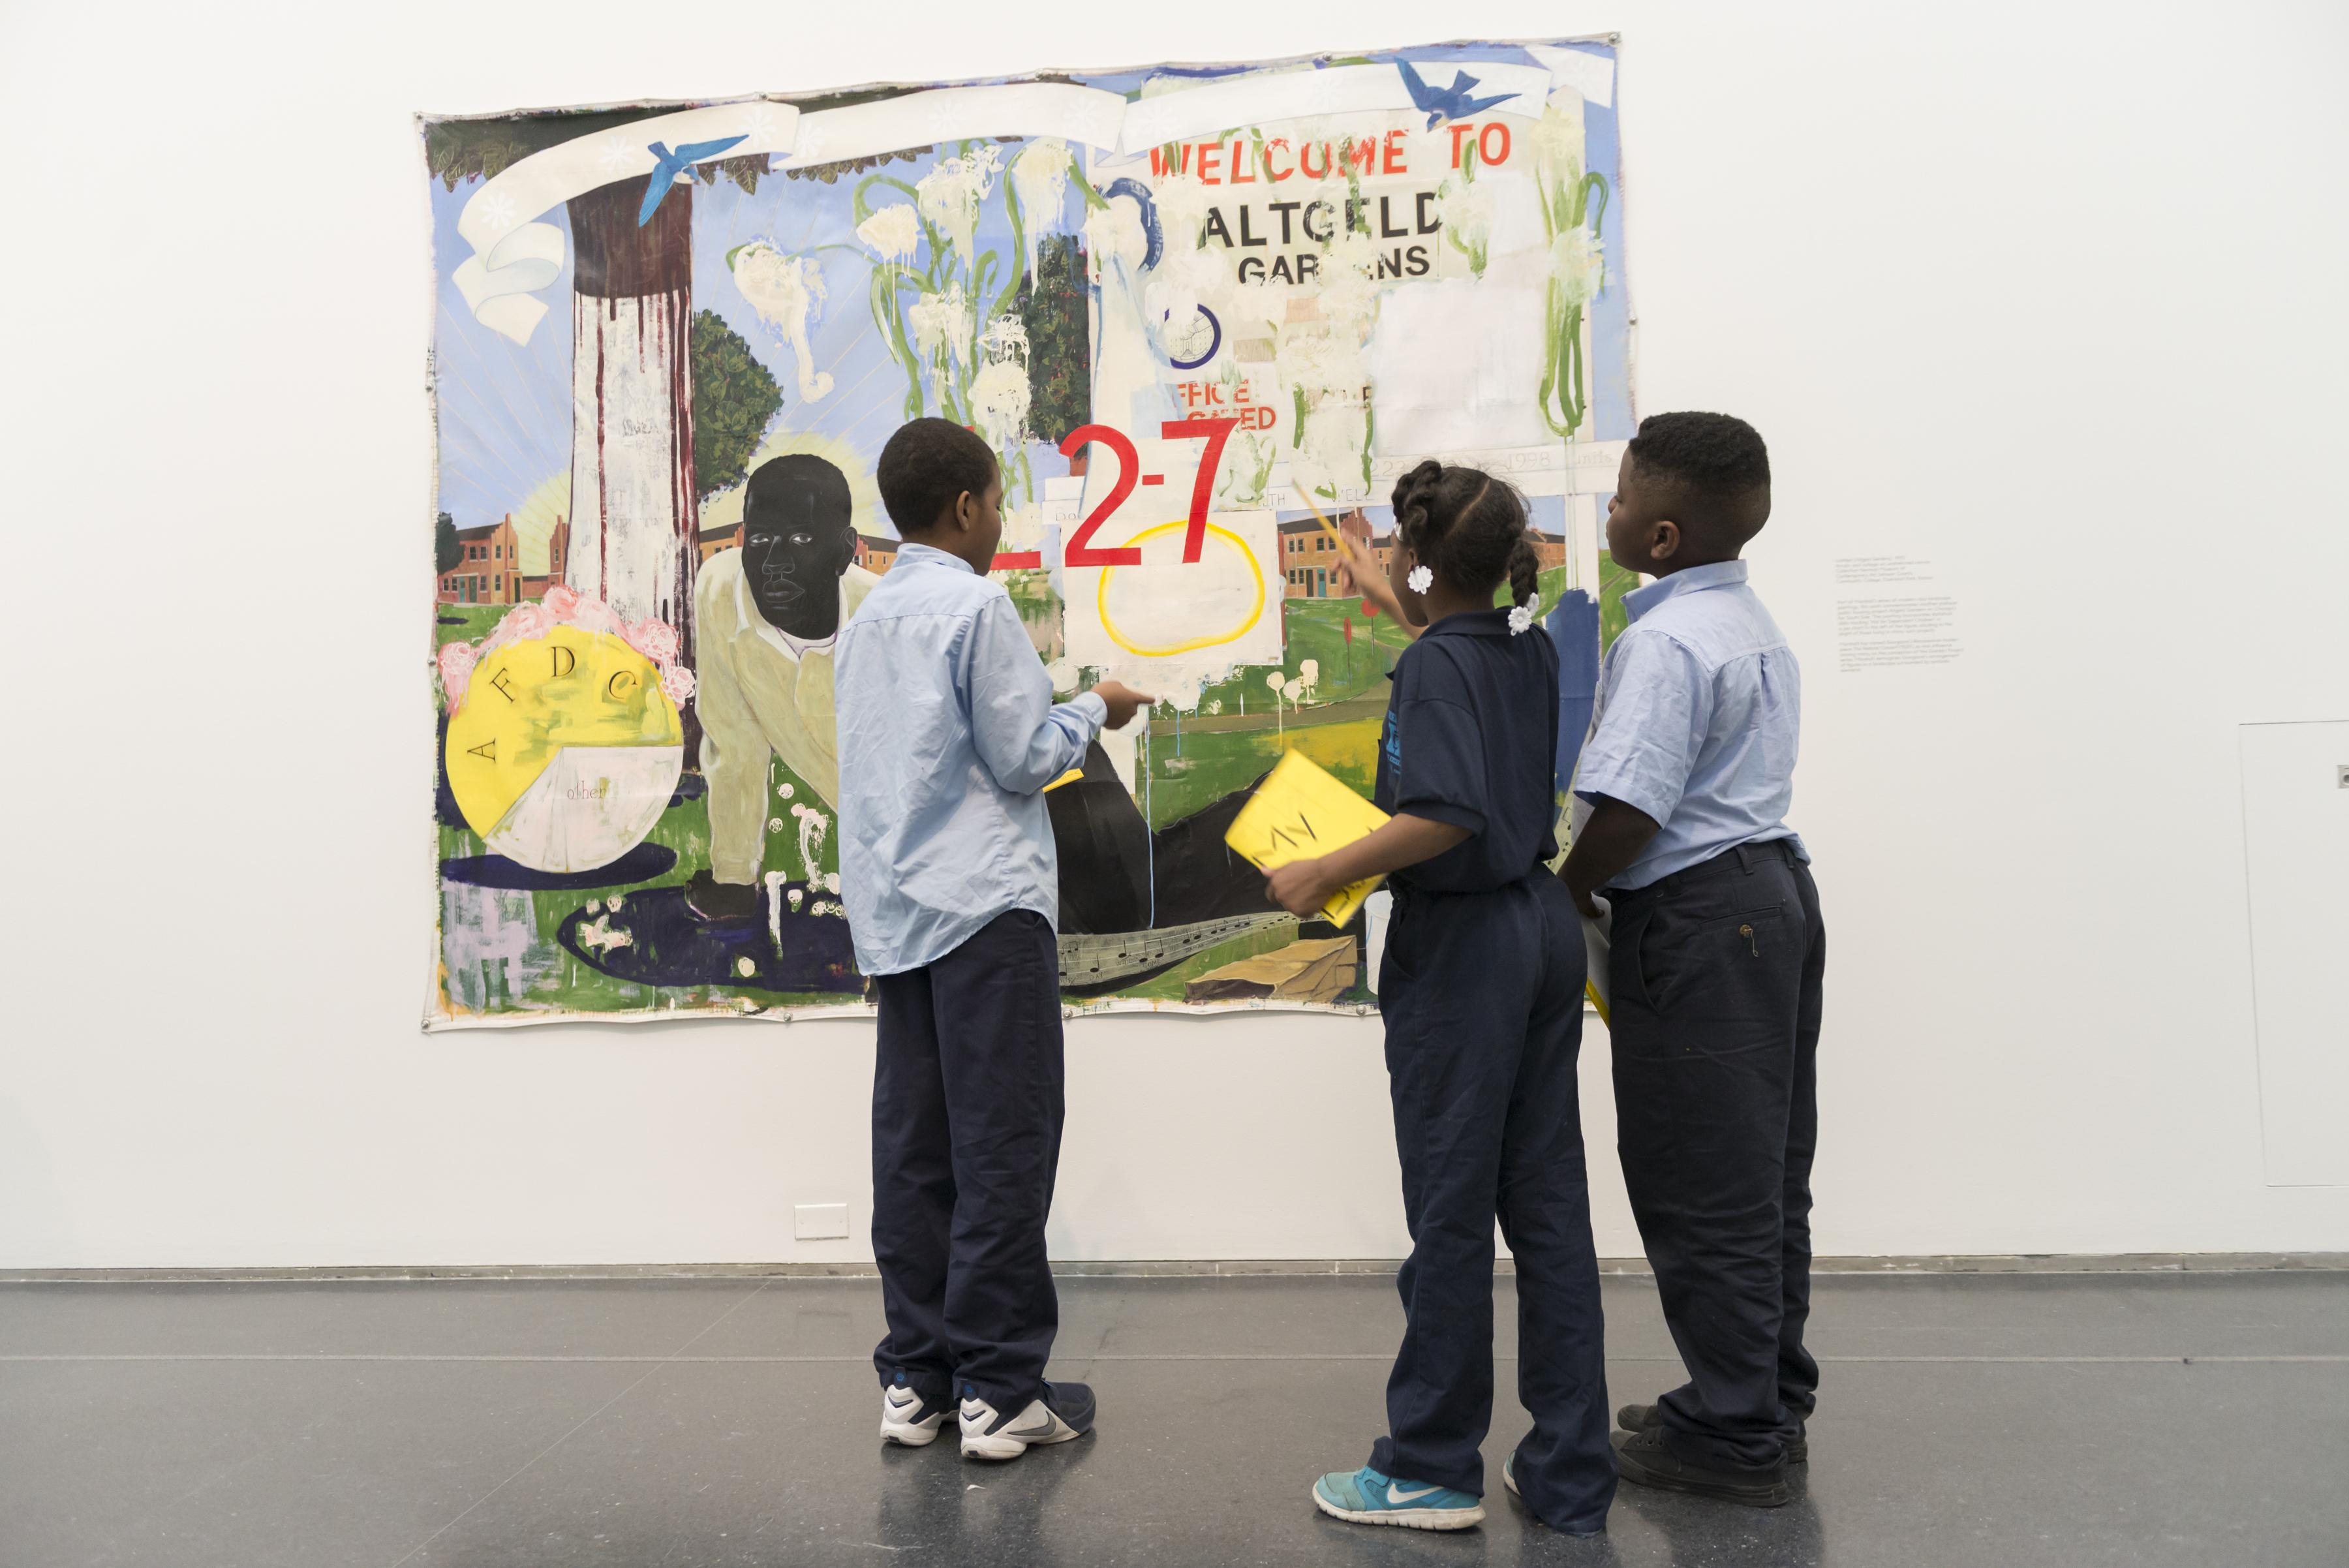 Three young black school children in school uniforms standing in front of a painting on a school tour.